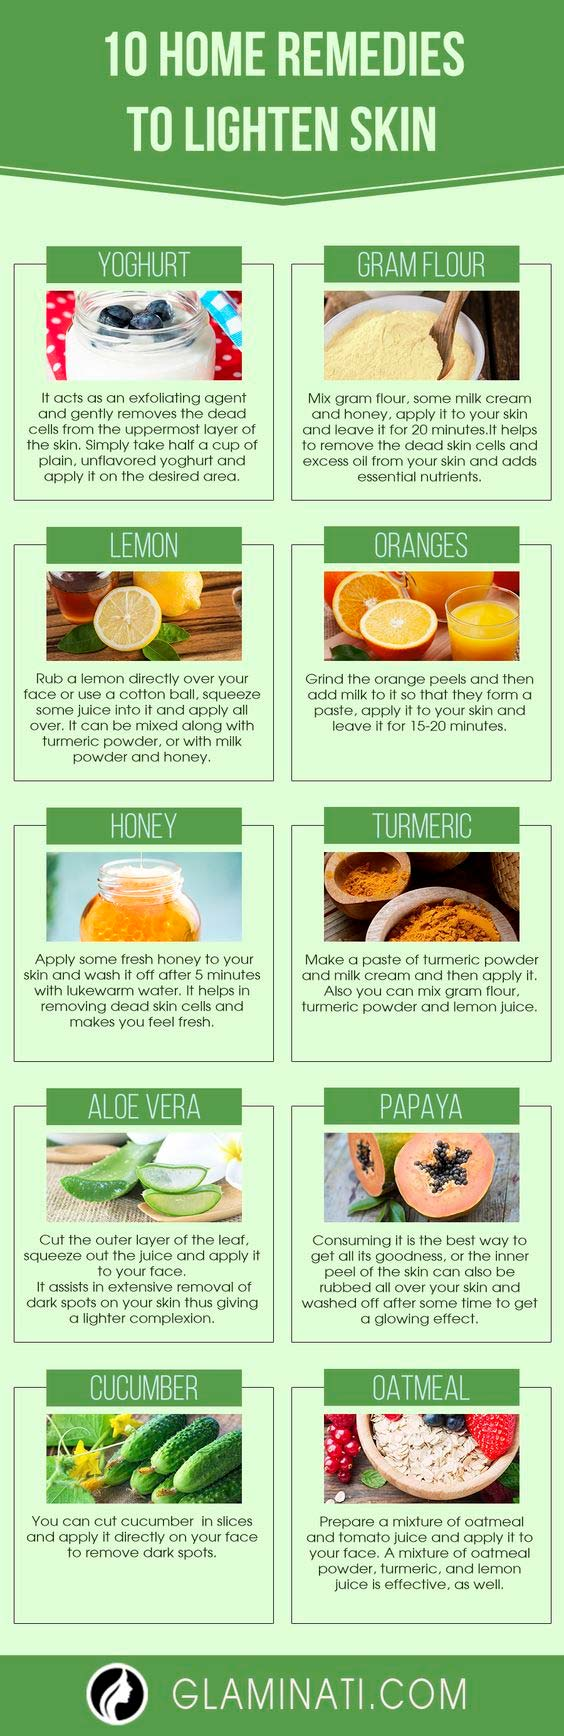 How to Lighten Skin at Home Using Only Natural Products